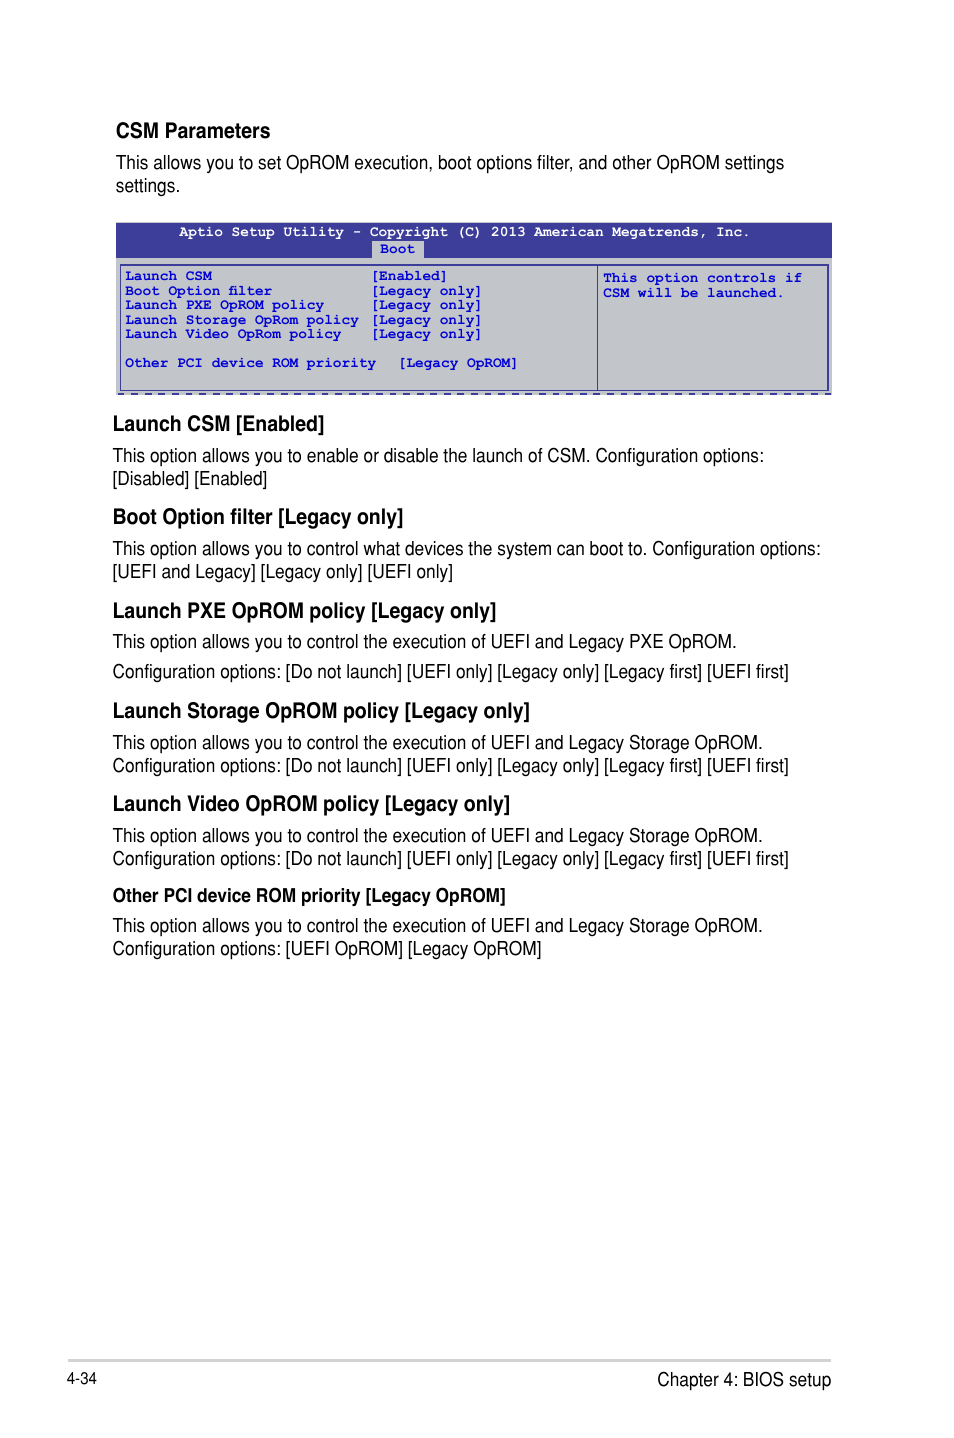 Csm parameters, Launch csm [enabled, Boot option filter [legacy only